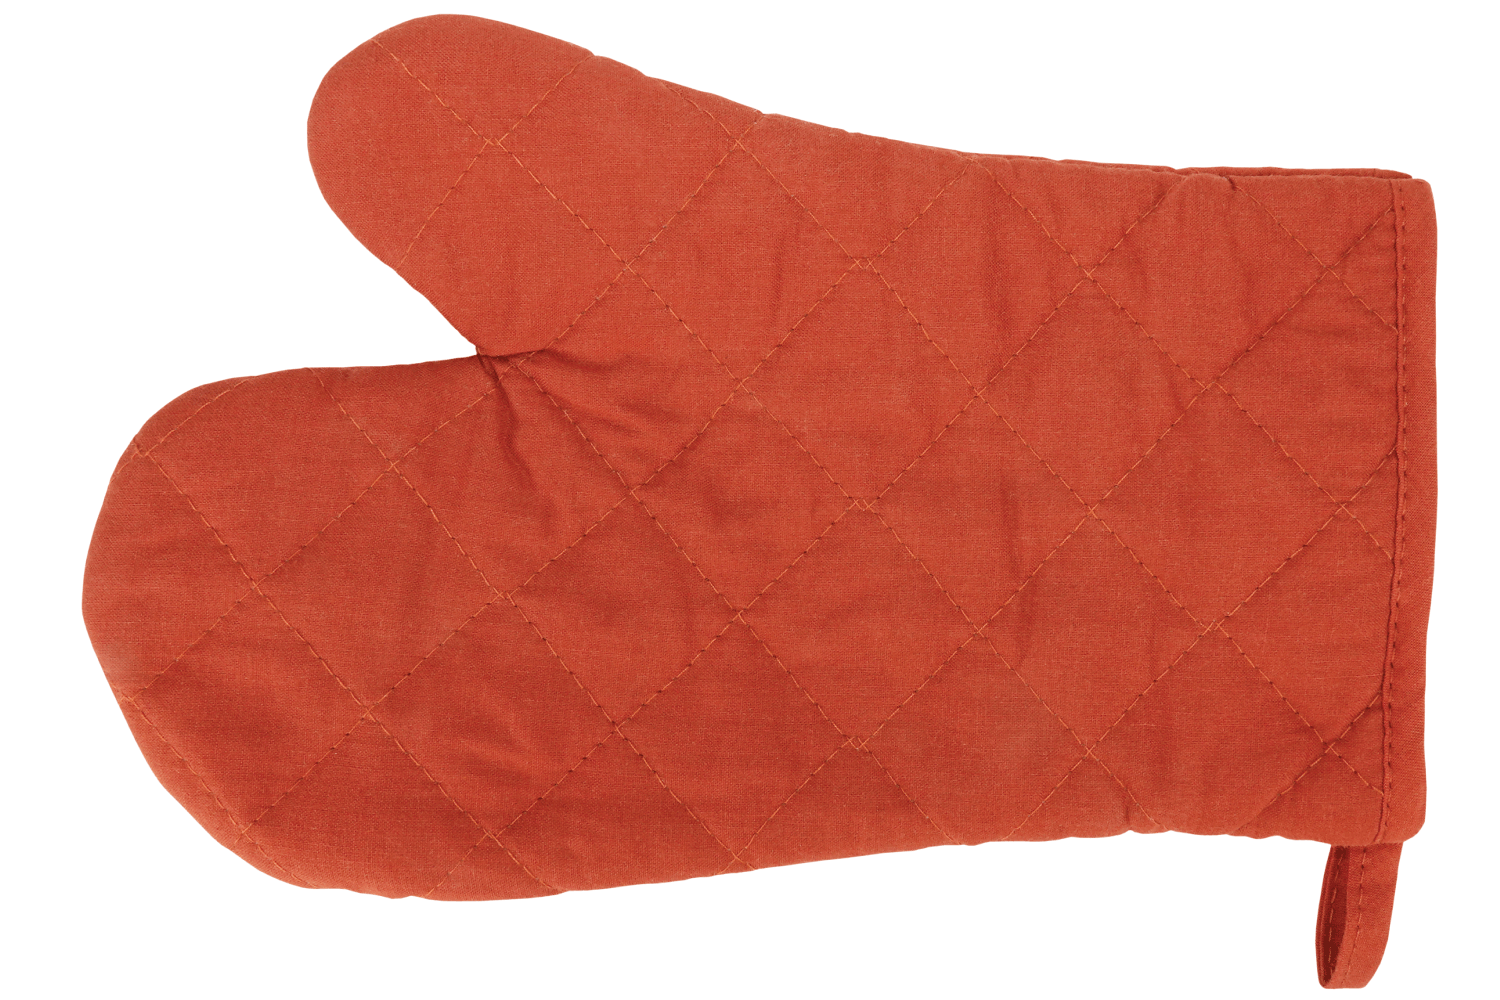 classic brown oven glove.